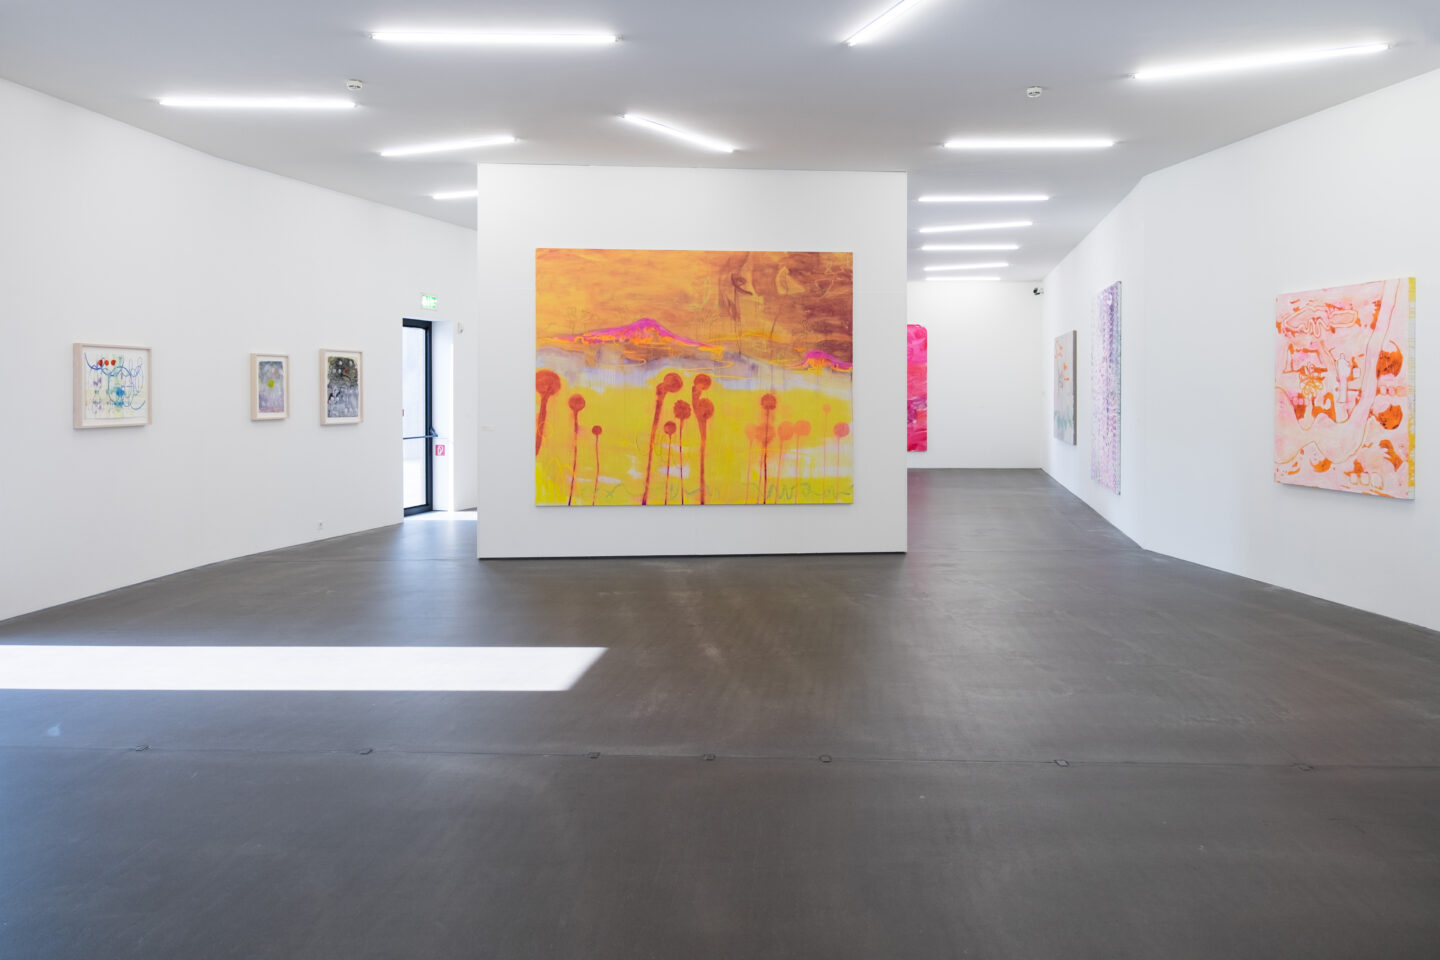 Exhibition View Rebekka Steiger Soloshow «Boxing the Compass» at Kunsthaus Grenchen, 2020 / Photo: Laura Hadorn / Courtesy: Rebekka Steiger and Galerie Urs Meile, Beijing-Luzern